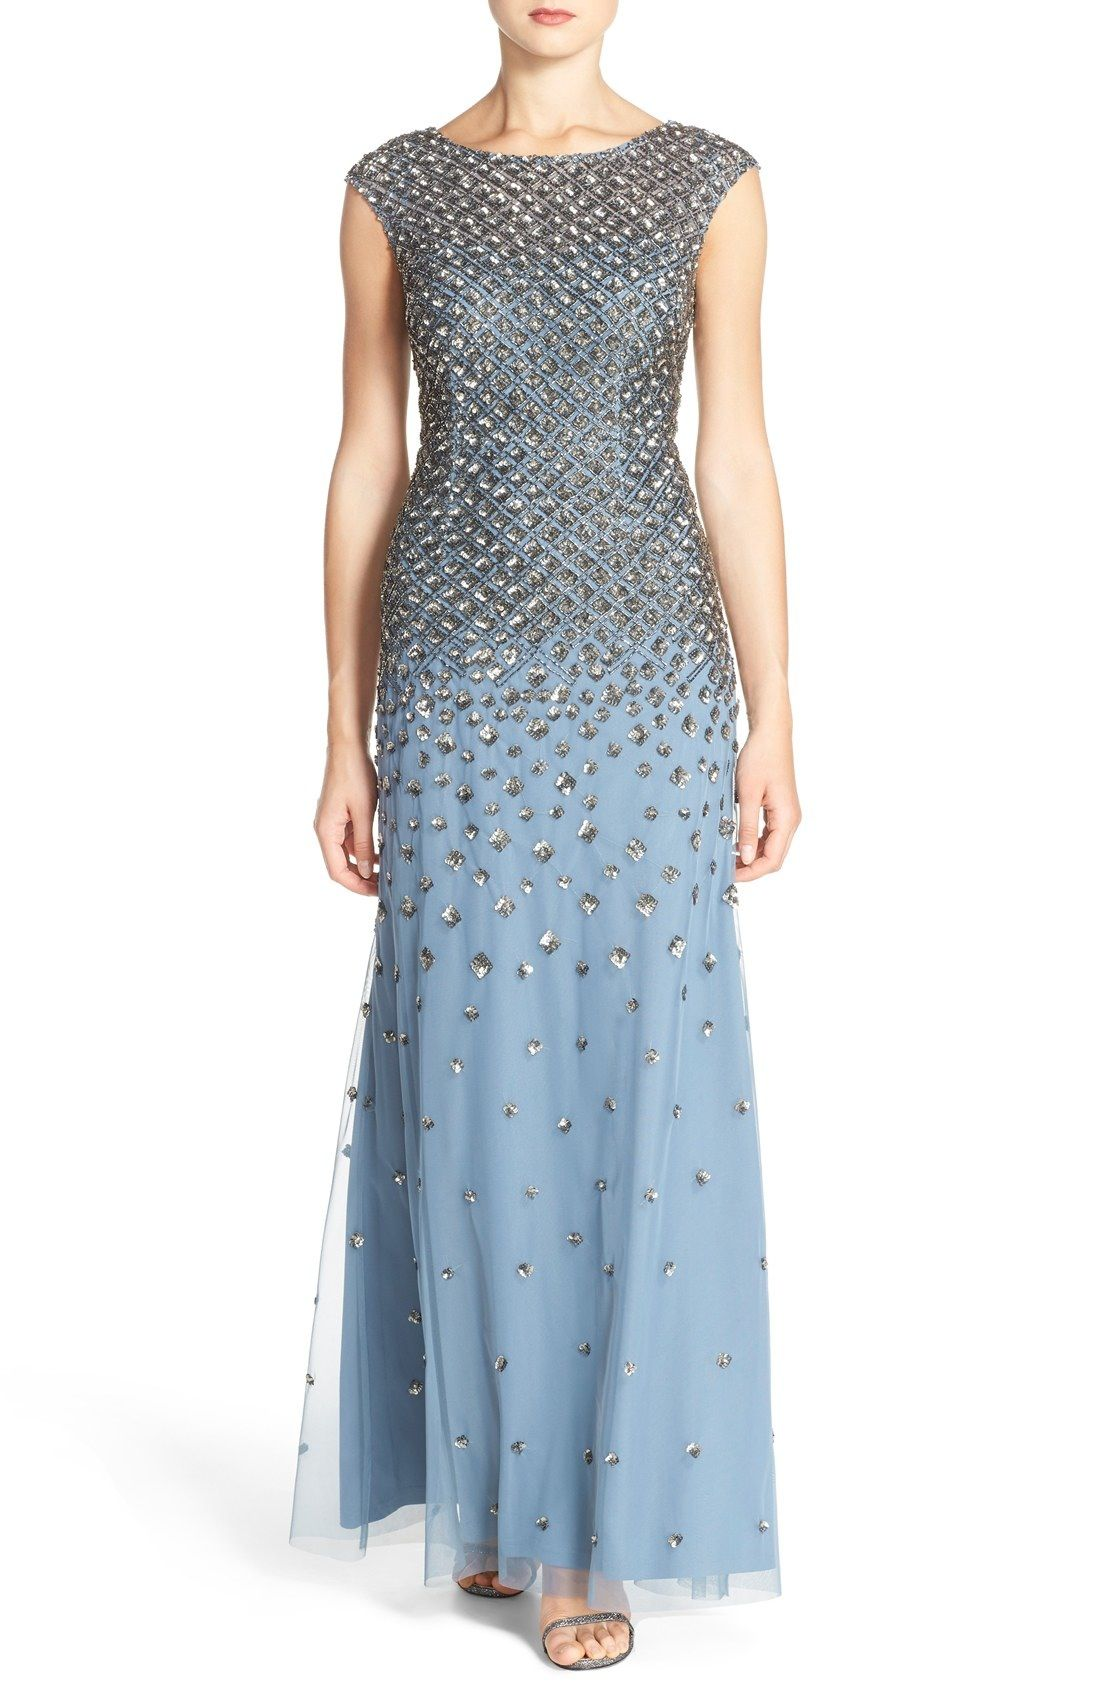 Fancy Nordstroms Mother Of The Groom Dresses Image Collection - All ...